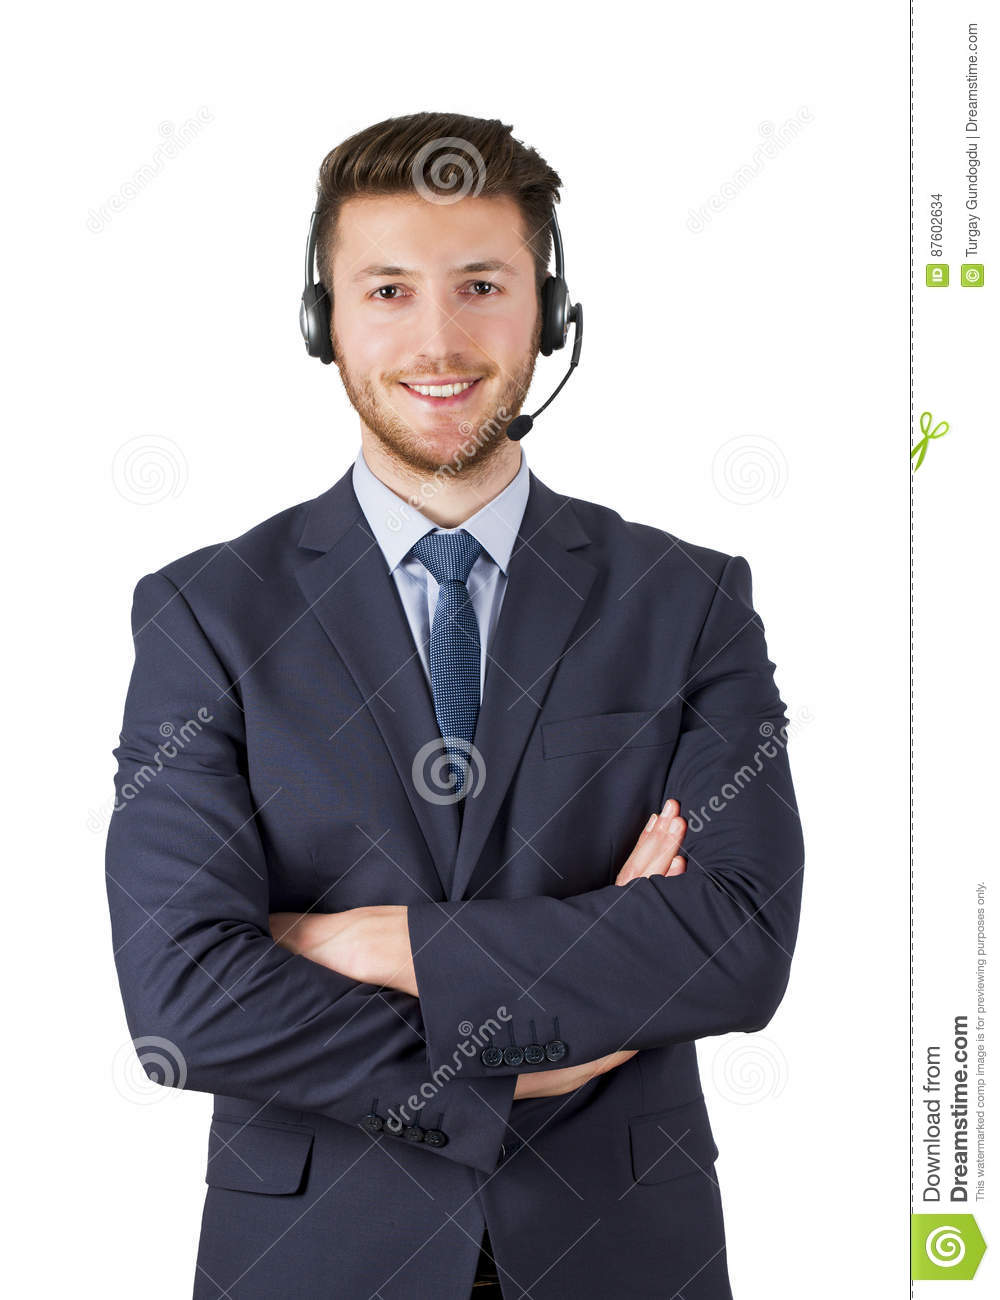 Portrait of happy smiling male customer support phone operator on white background isolated